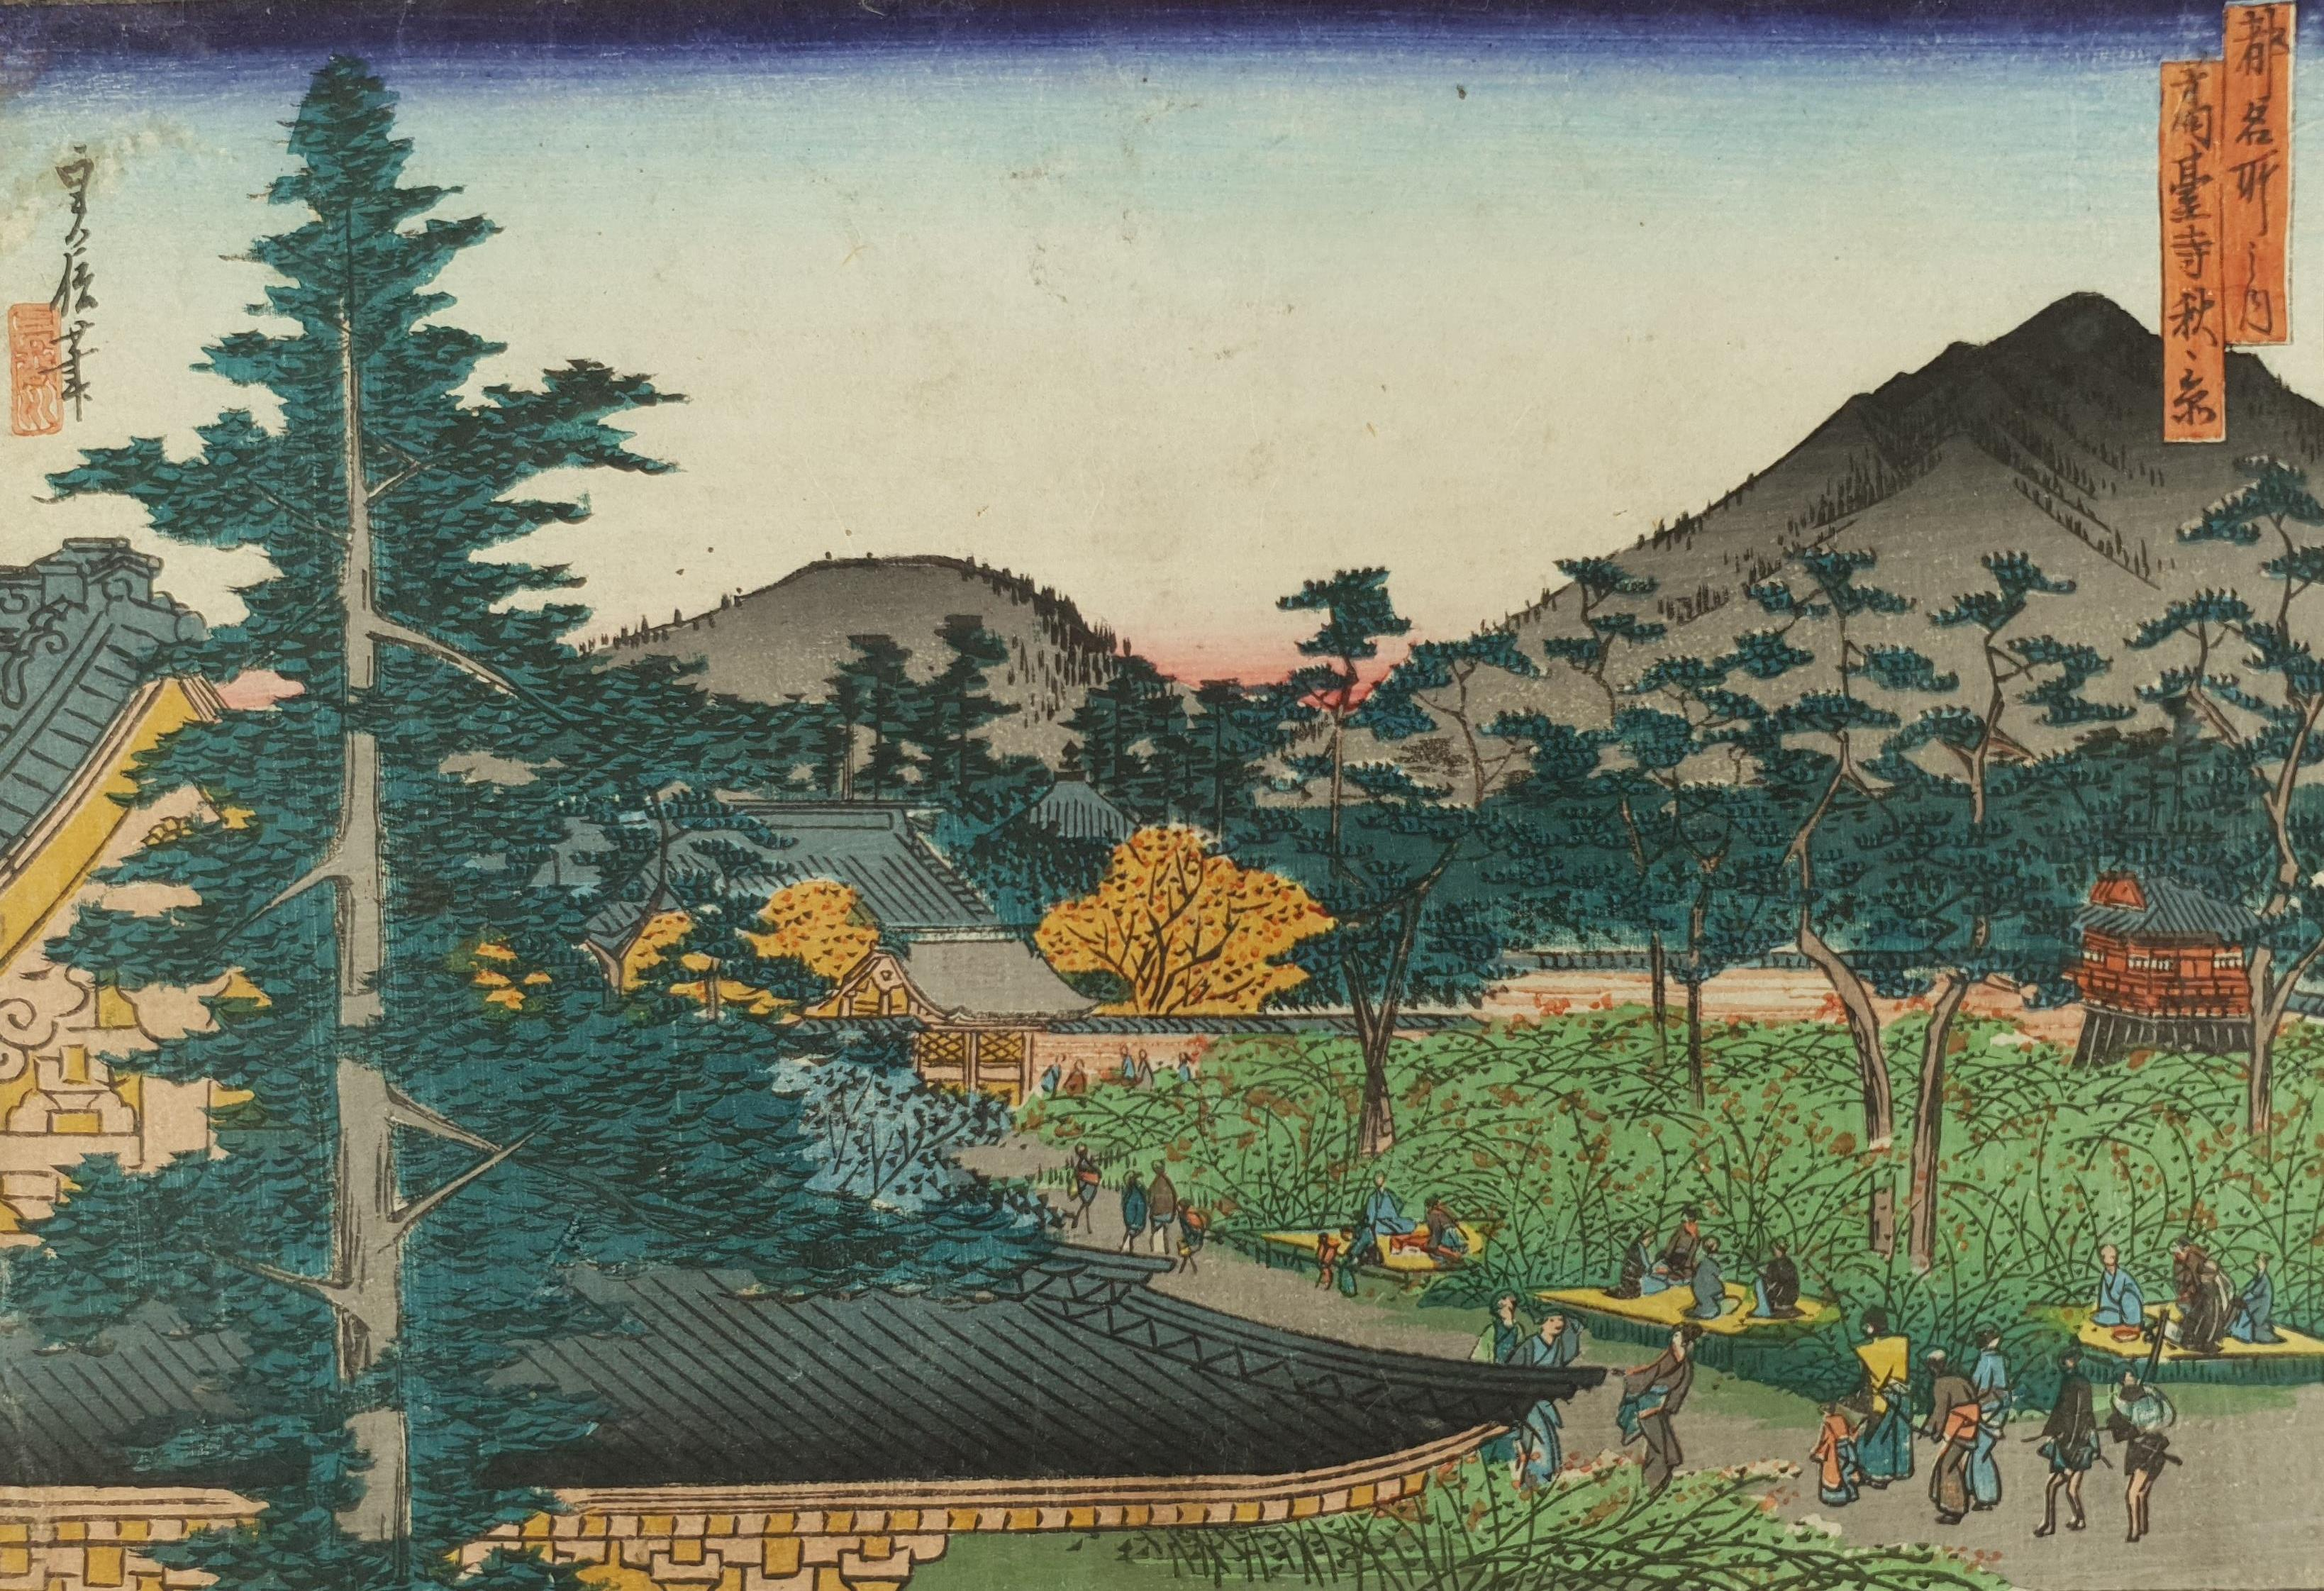 Hasegawa Sadanobu (Japanese 1809-1879): 'Autumn Scene at K�dai-ji Temple', woodblock print from the